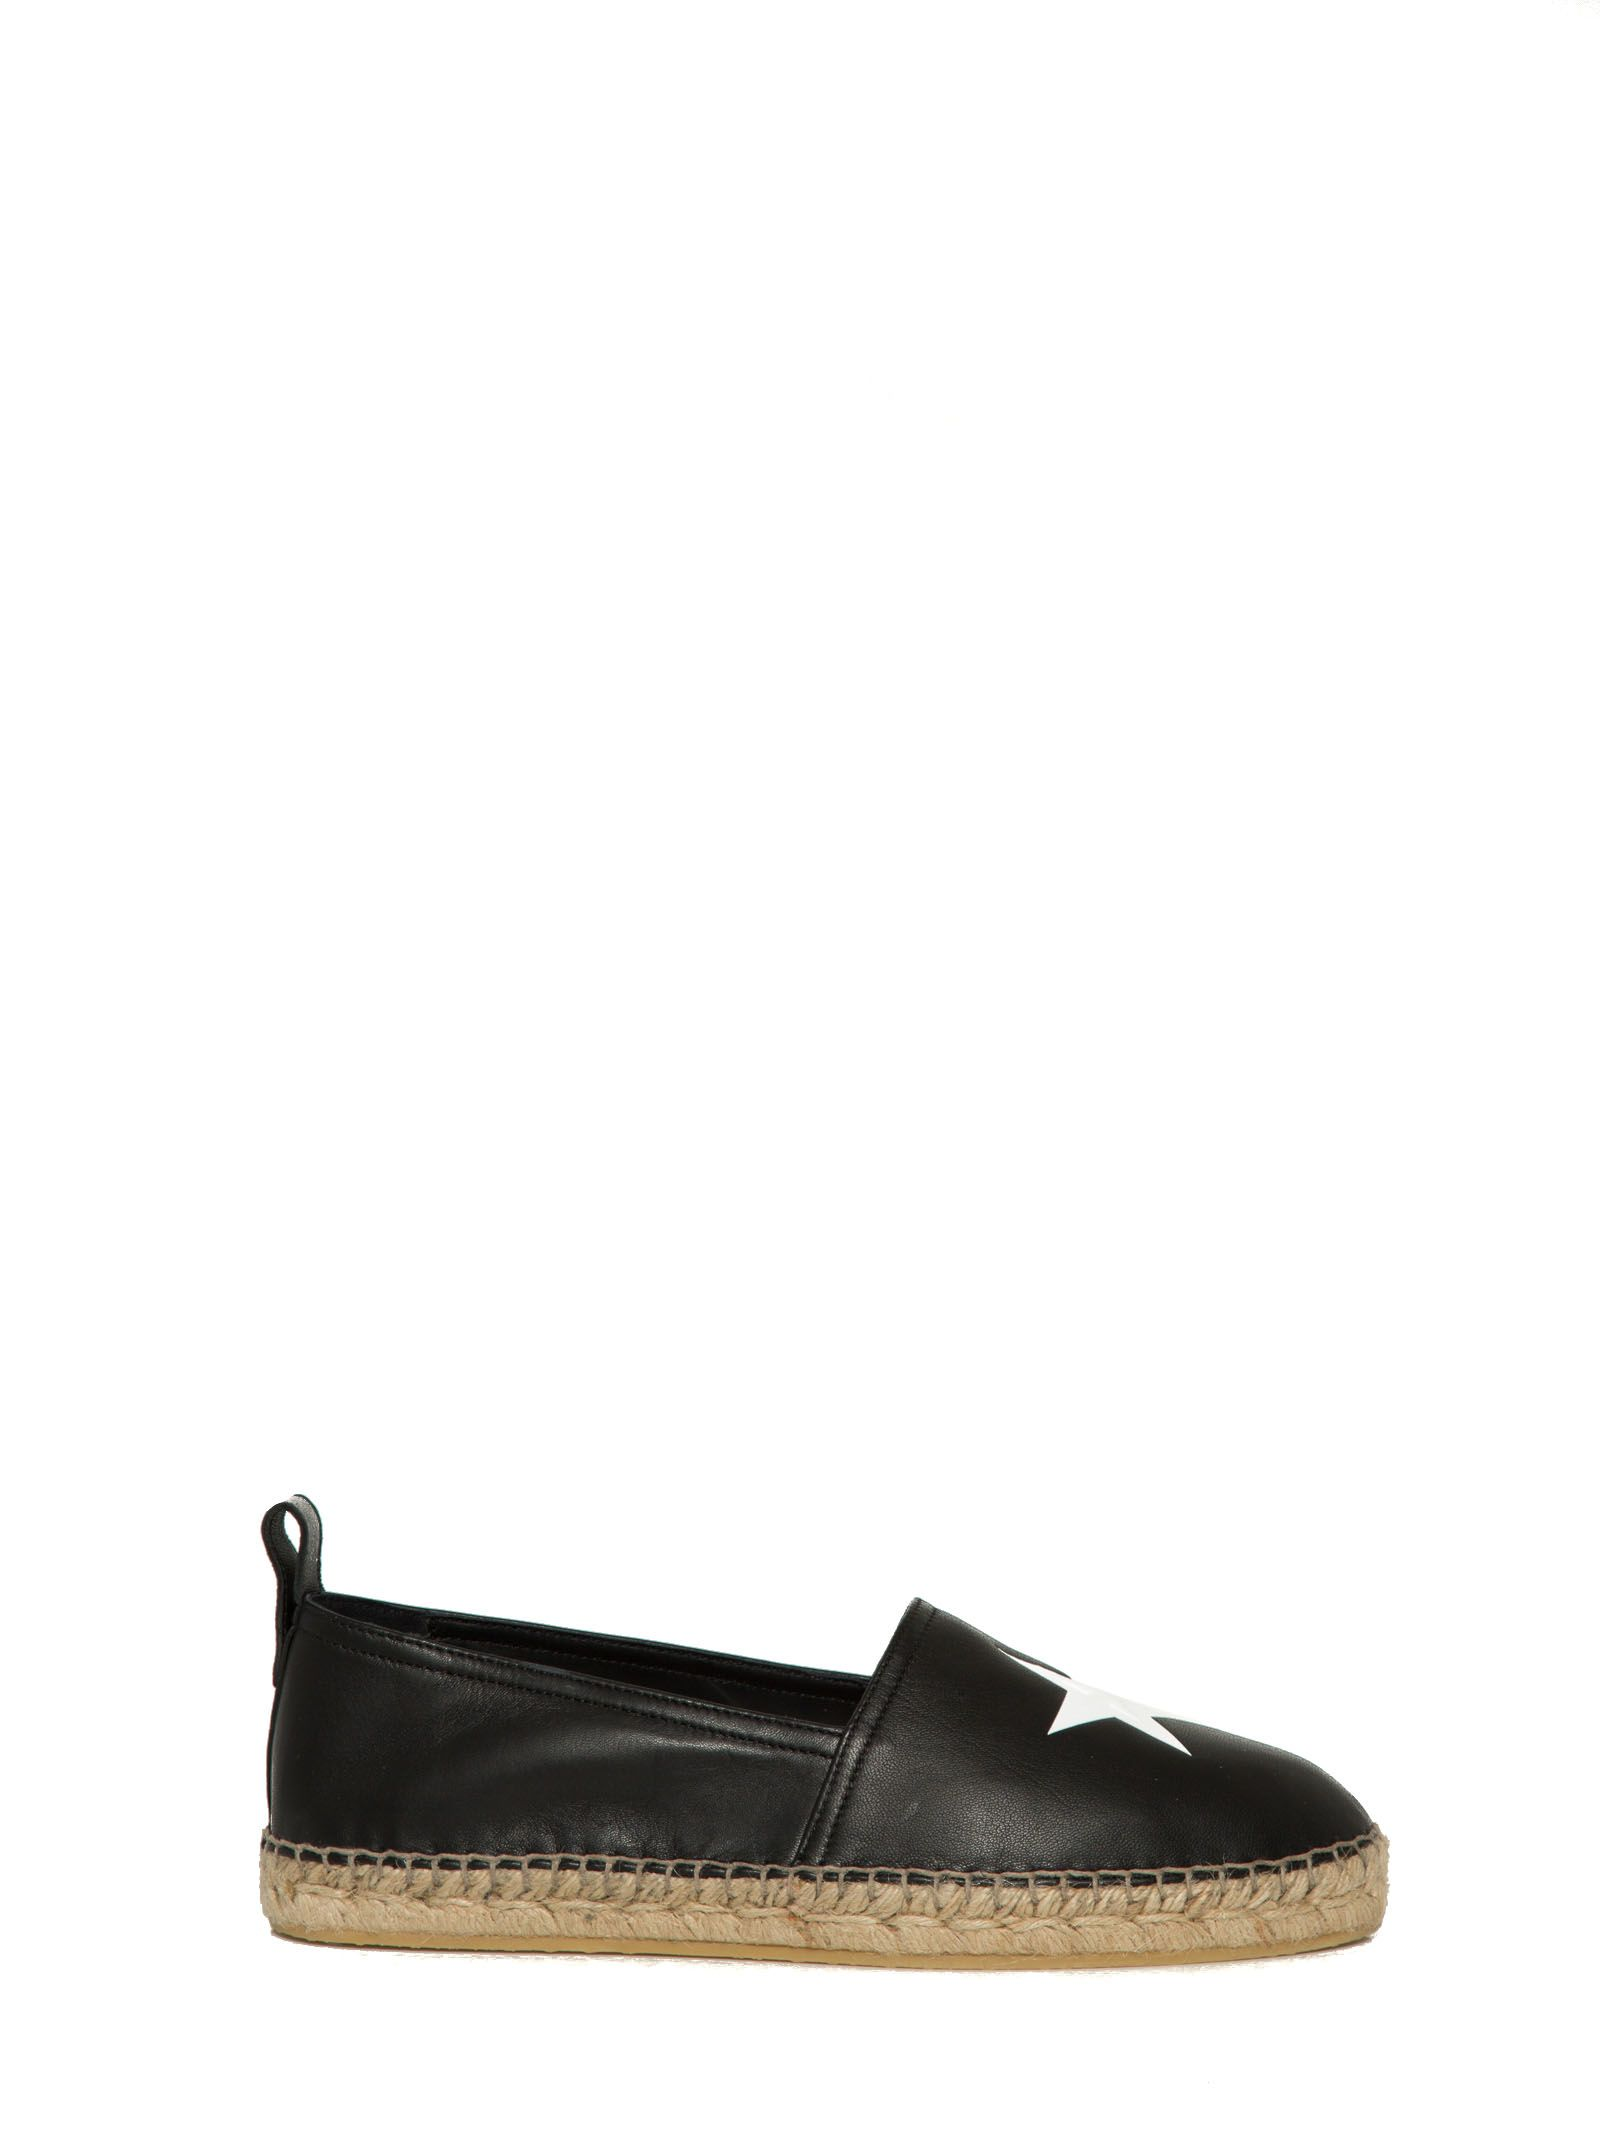 Givenchy Espadrilles In Leather With Star